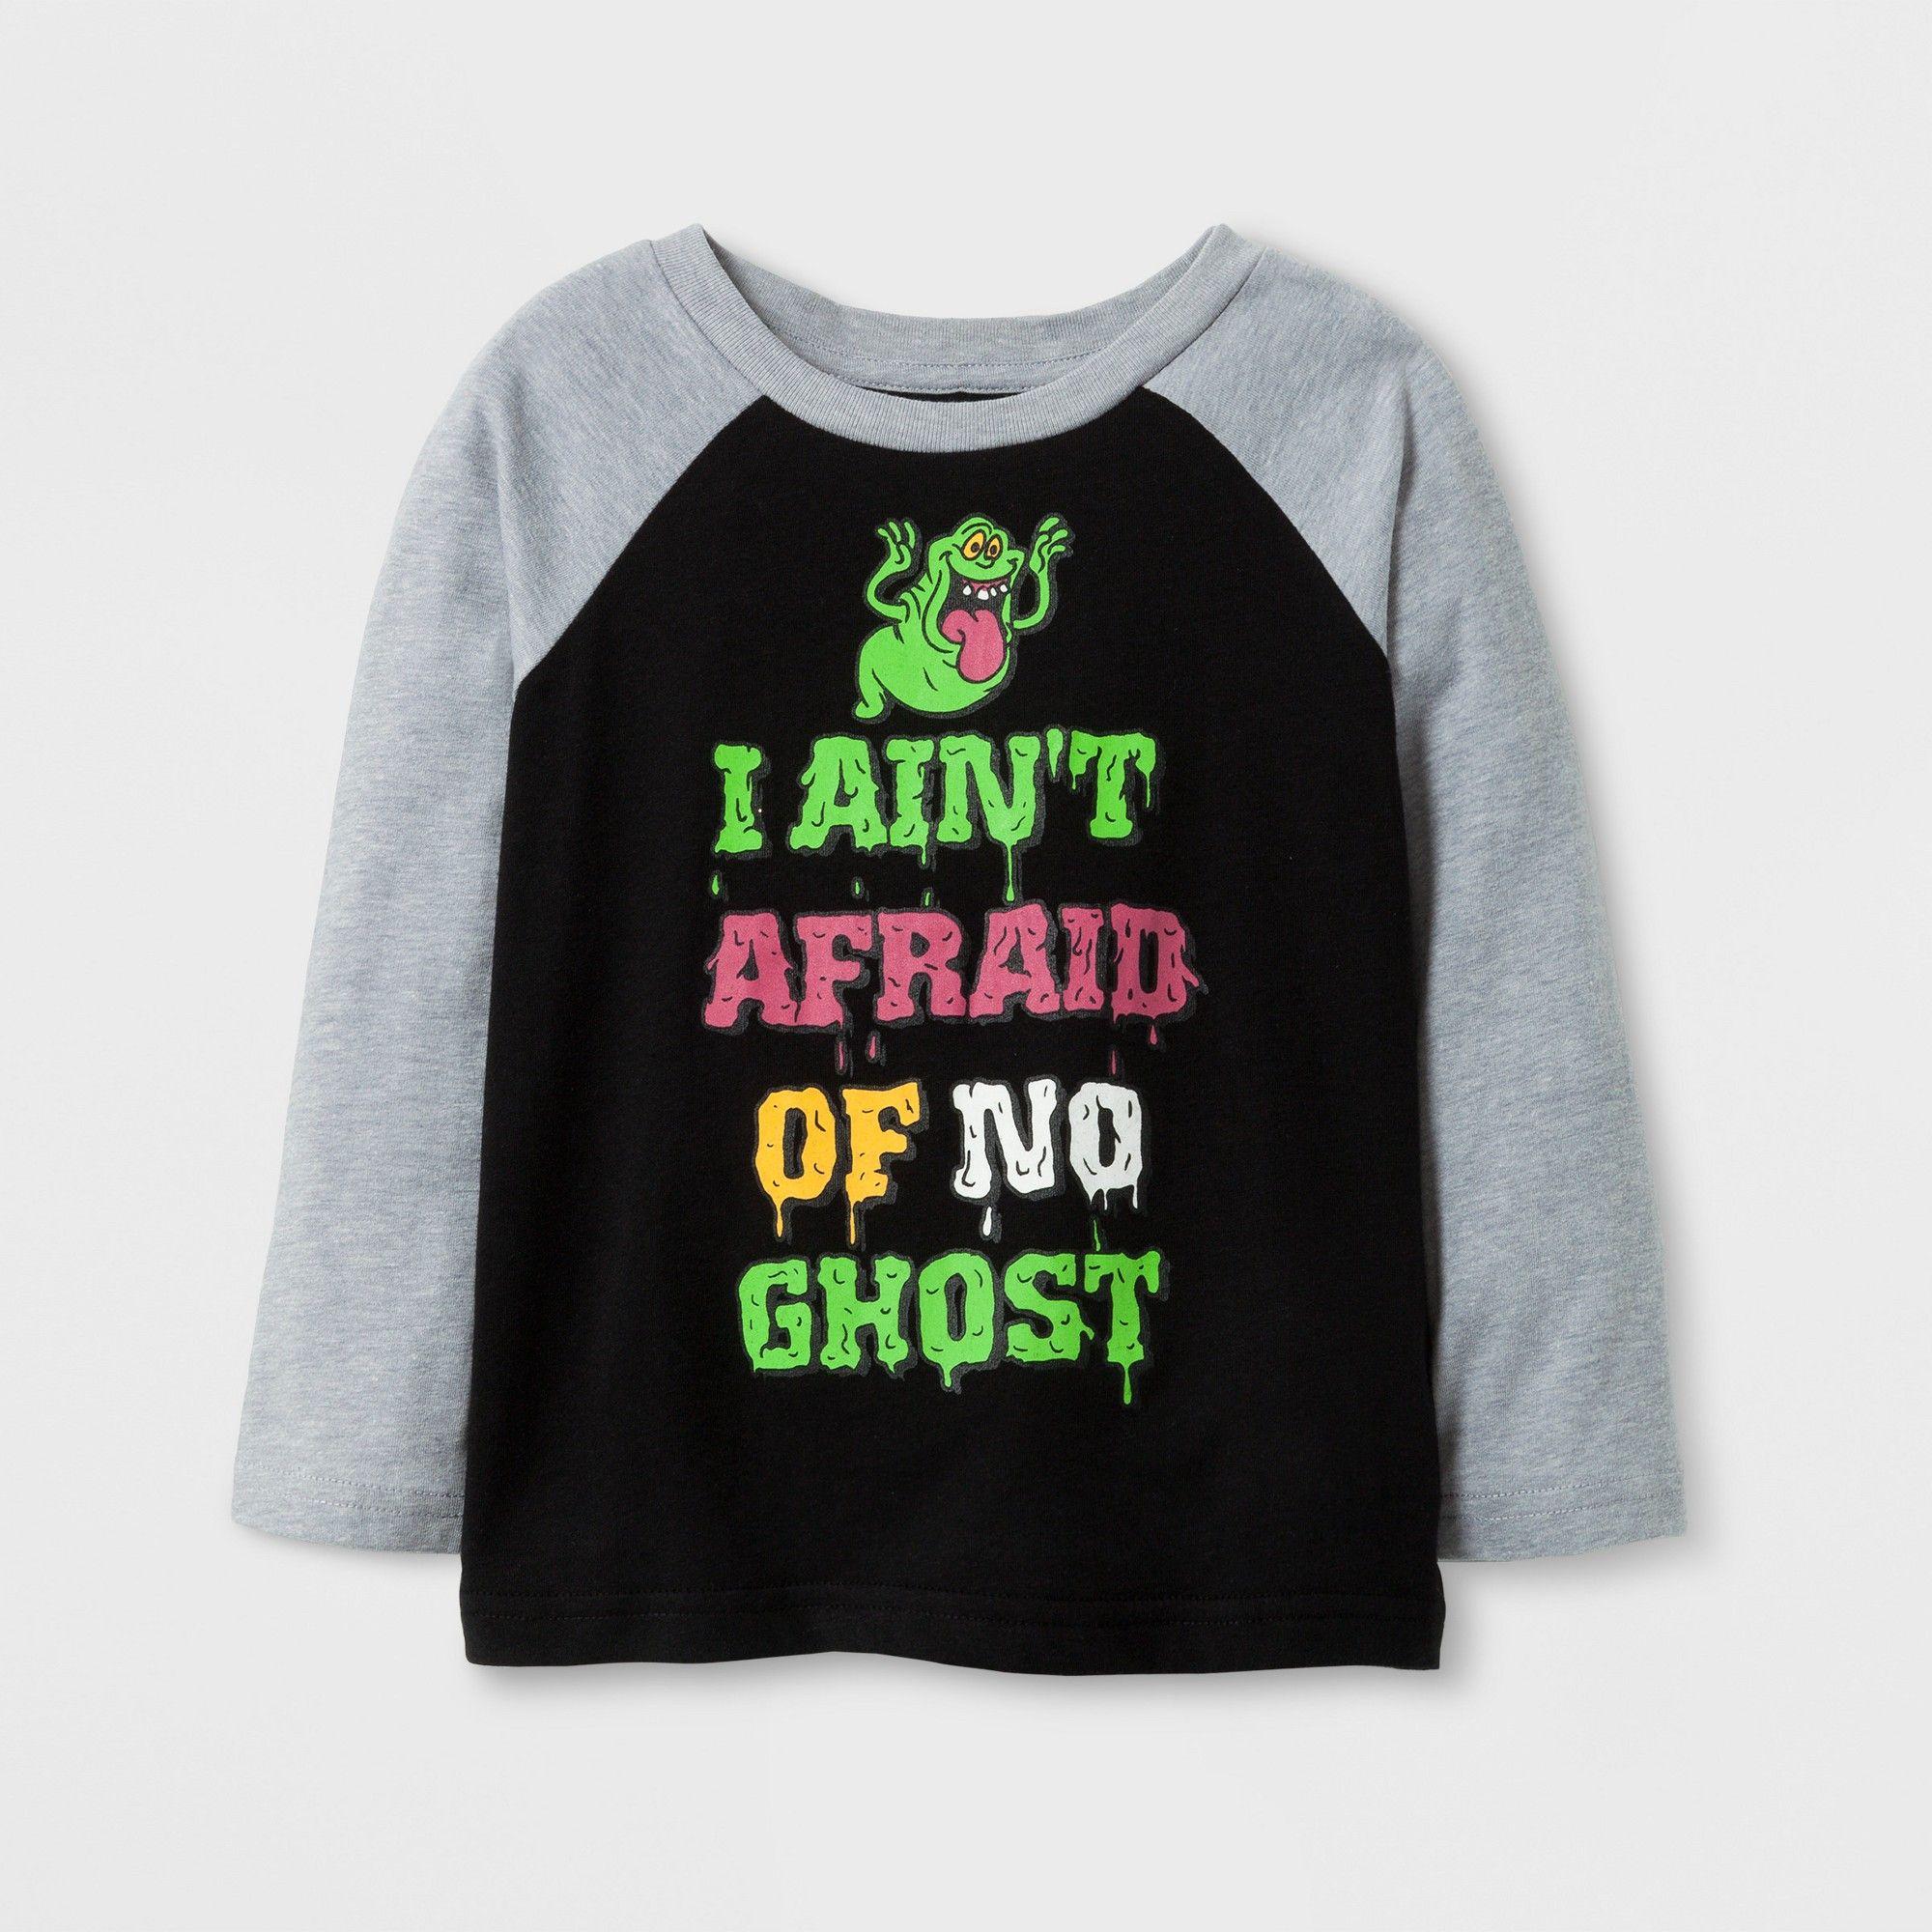 cb7f46be7 Ghostbusters Toddler Boys' 'I Ain't Afraid OF NO Ghost' Long Sleeve  Halloween T-Shirt - Black 3T